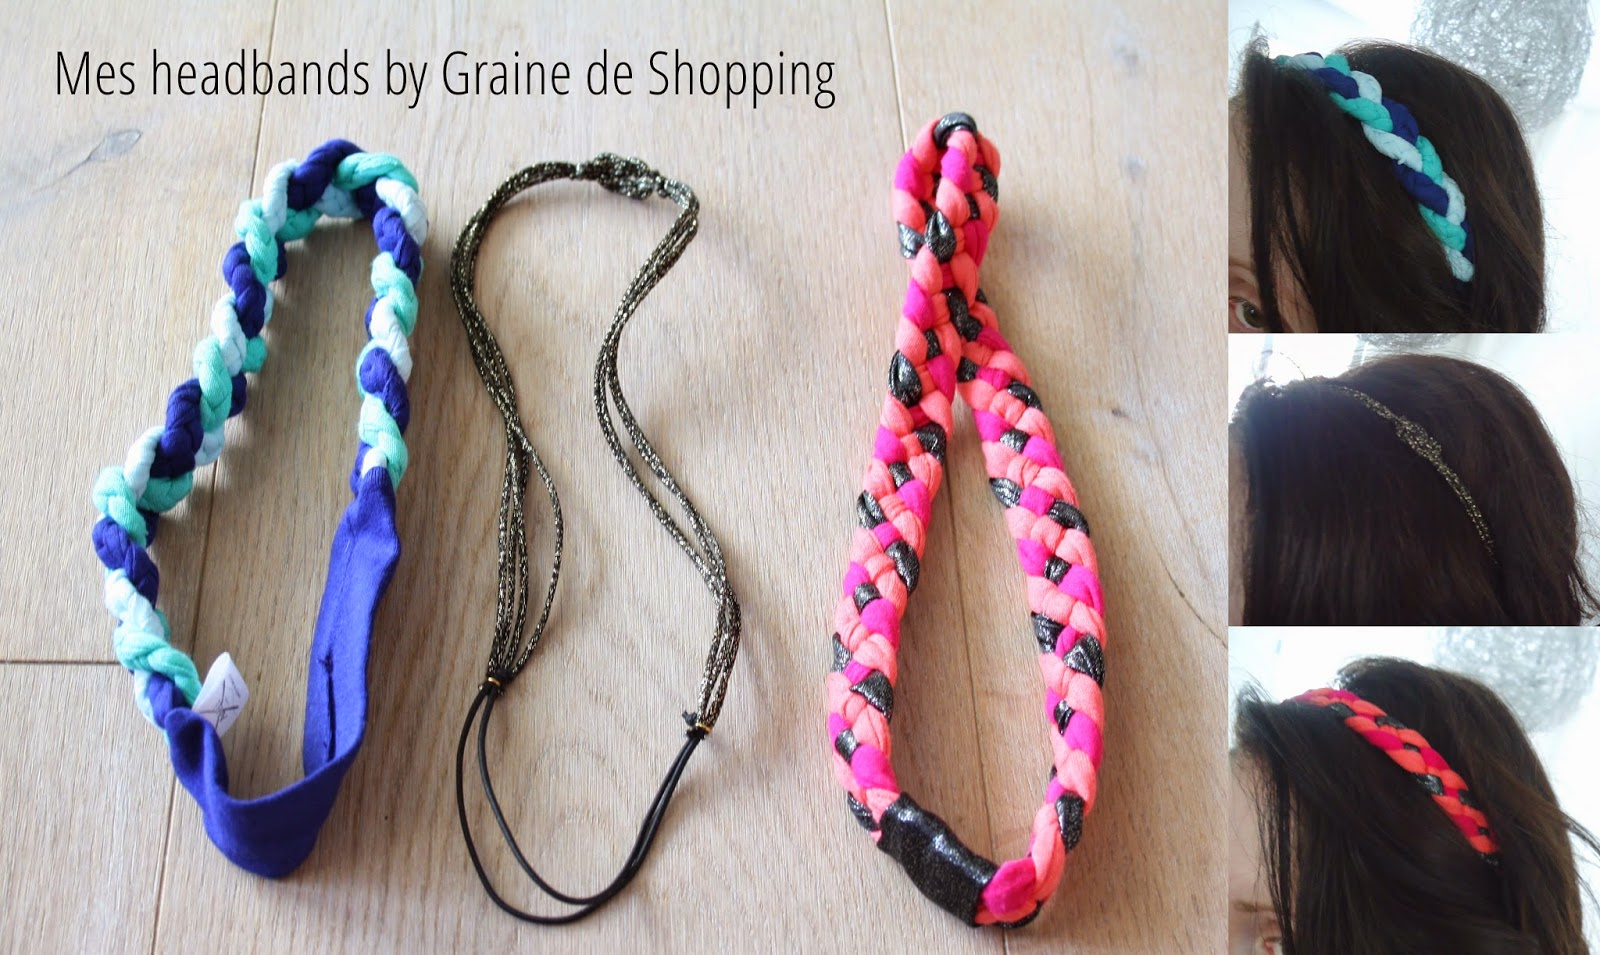 http://www.grainedeshopping.com/collections/headbands